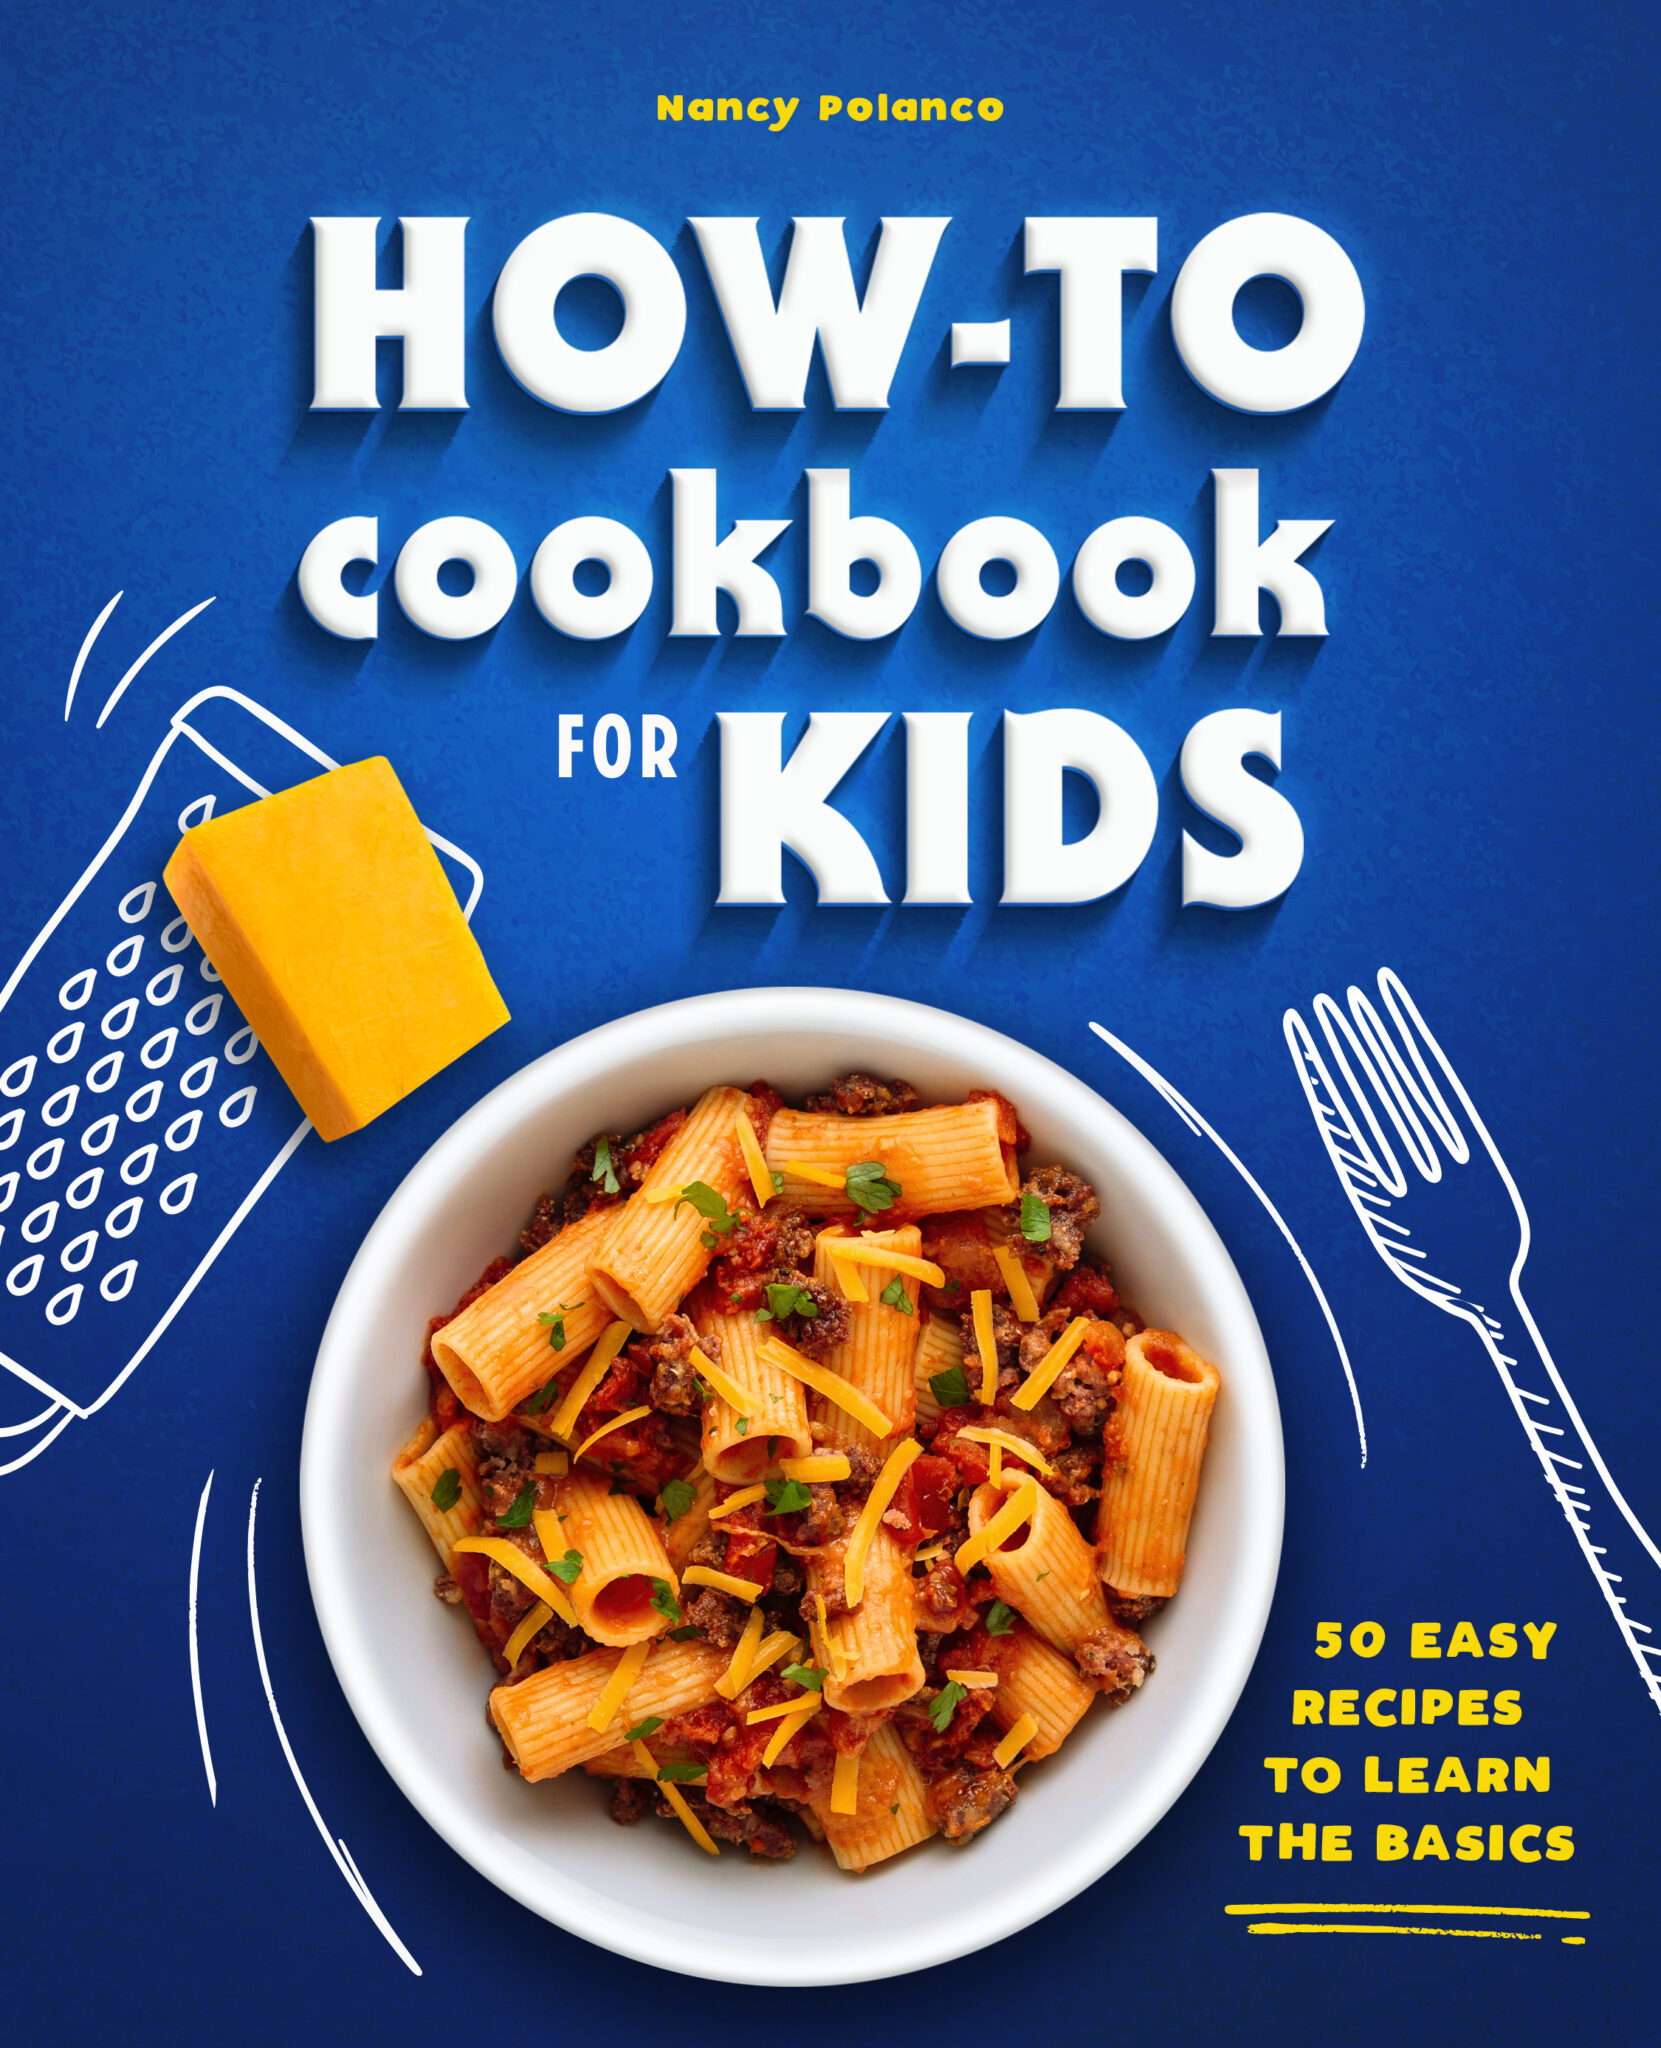 """The front cover of the """"How-To Cookbook for Kids: 50 Easy Recipes to Learn the Basics,"""" it is blue and there is a plate of pasta surrounded by graphic forks, grater, and cheese on a blue cover."""